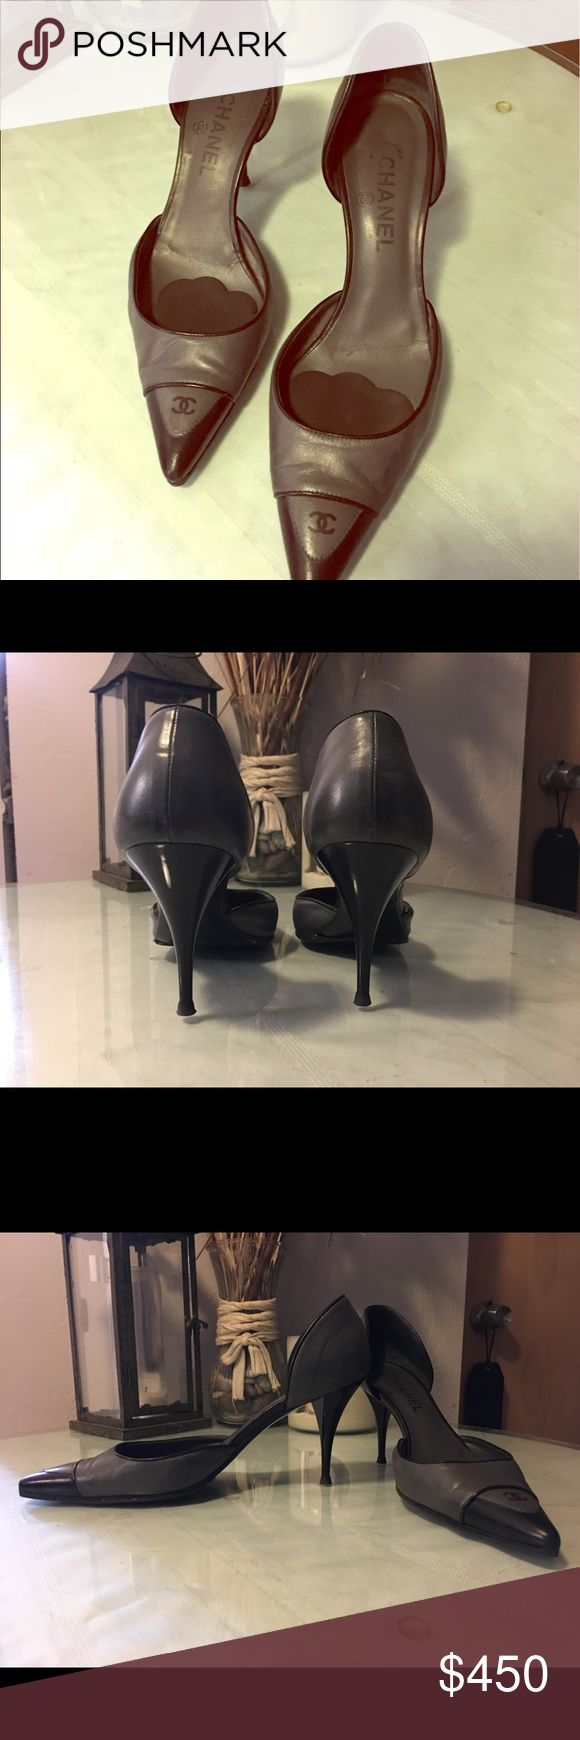 Final Price! Chanel Pointed Toe Heels-grey & black Lovely Chanel Pointed Toe Pumps, charcoal grey in color with black detail. Great condition, minimal signs of wear. Heel approx. 3 inches CHANEL Shoes Heels